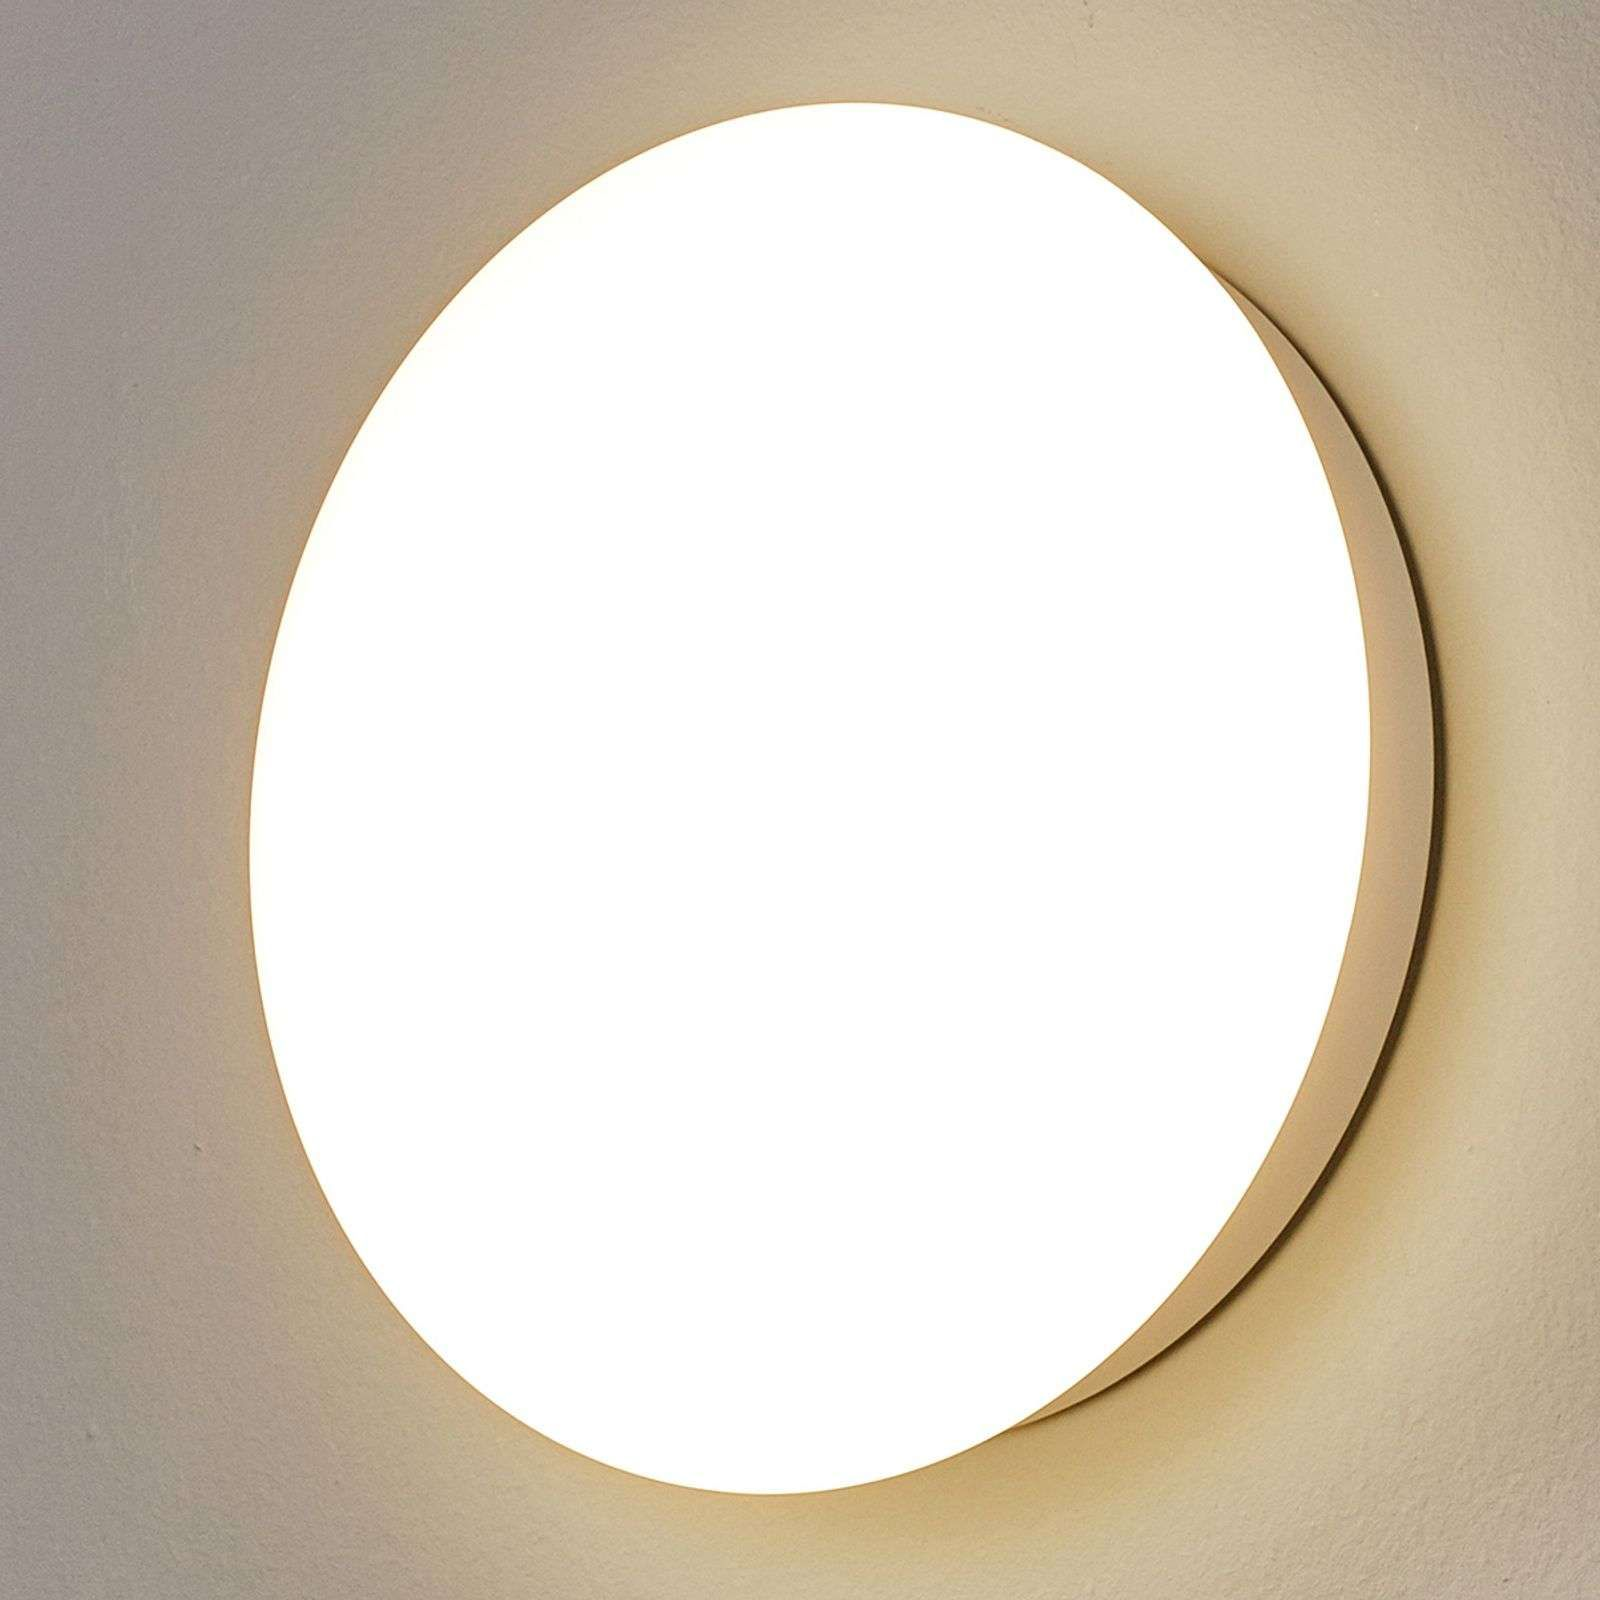 Applique Led Blanc Sun 12 Protection Ip55 In 2020 Plafondlamp Wandlamp Muurverlichting